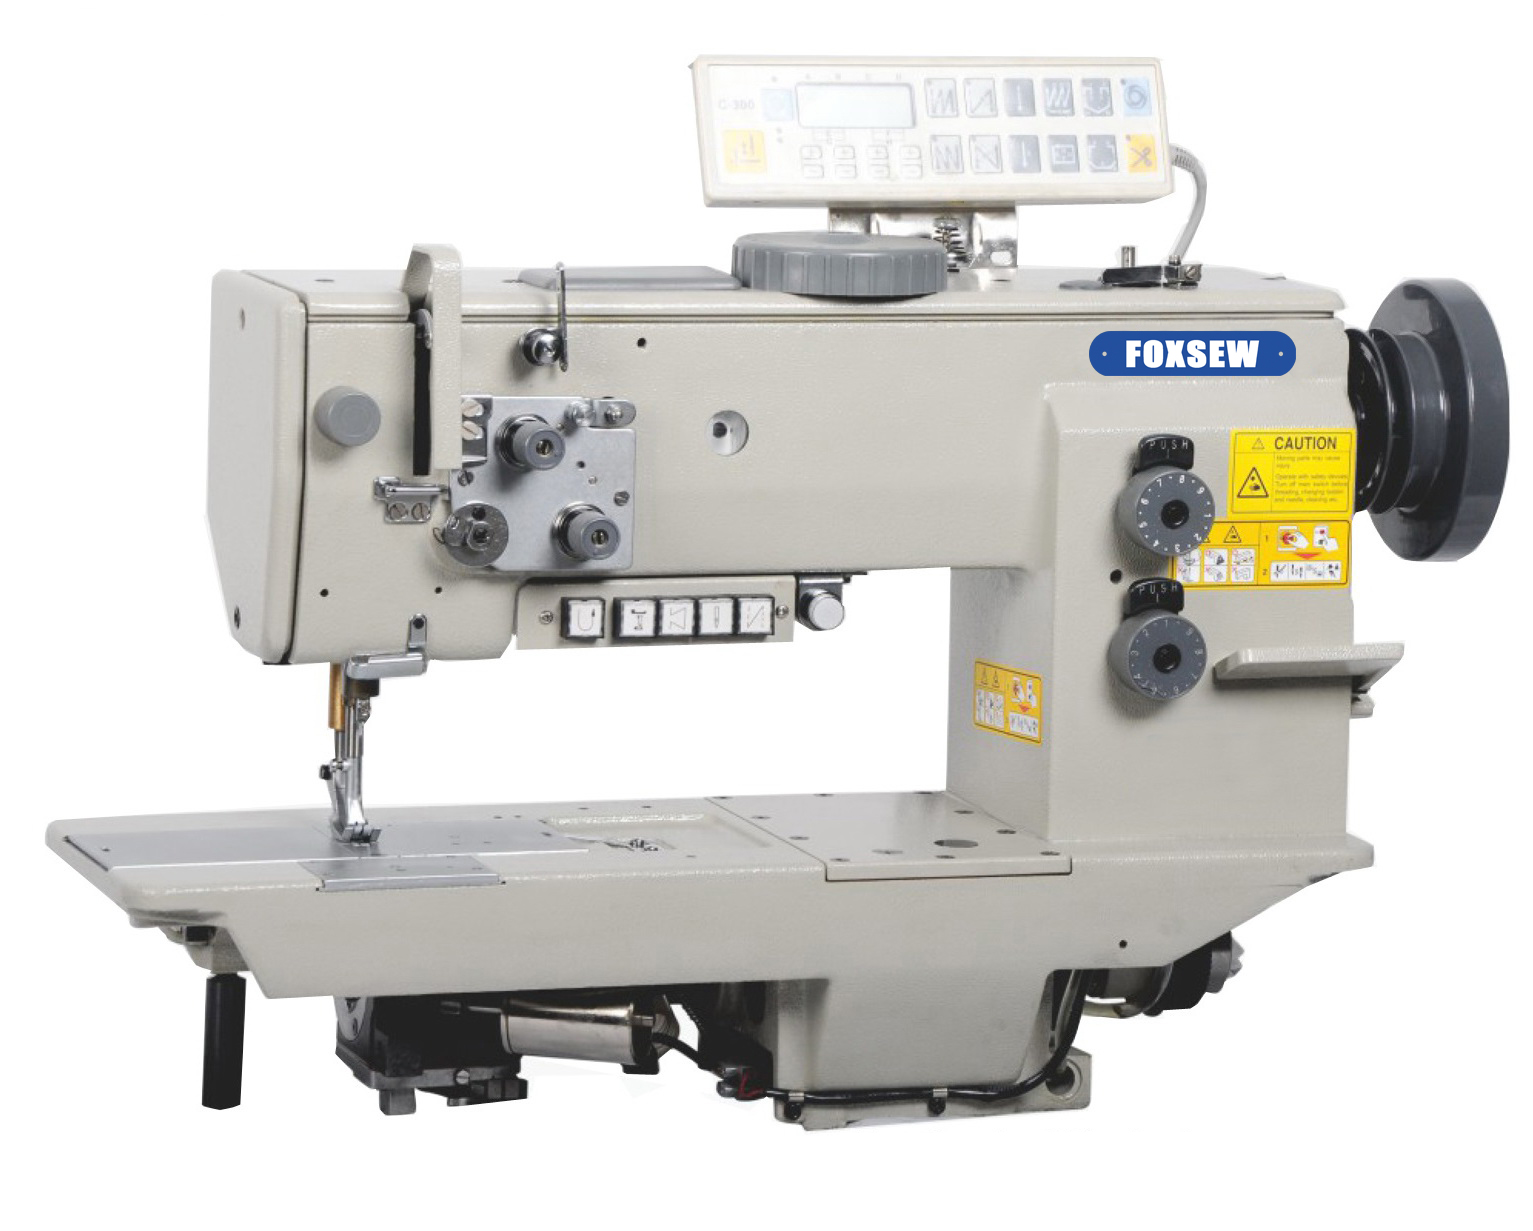 KD-7677-7 Single Needle Compound Feed Heavy Duty Sewing Machine with Automatic Thread Trimmer